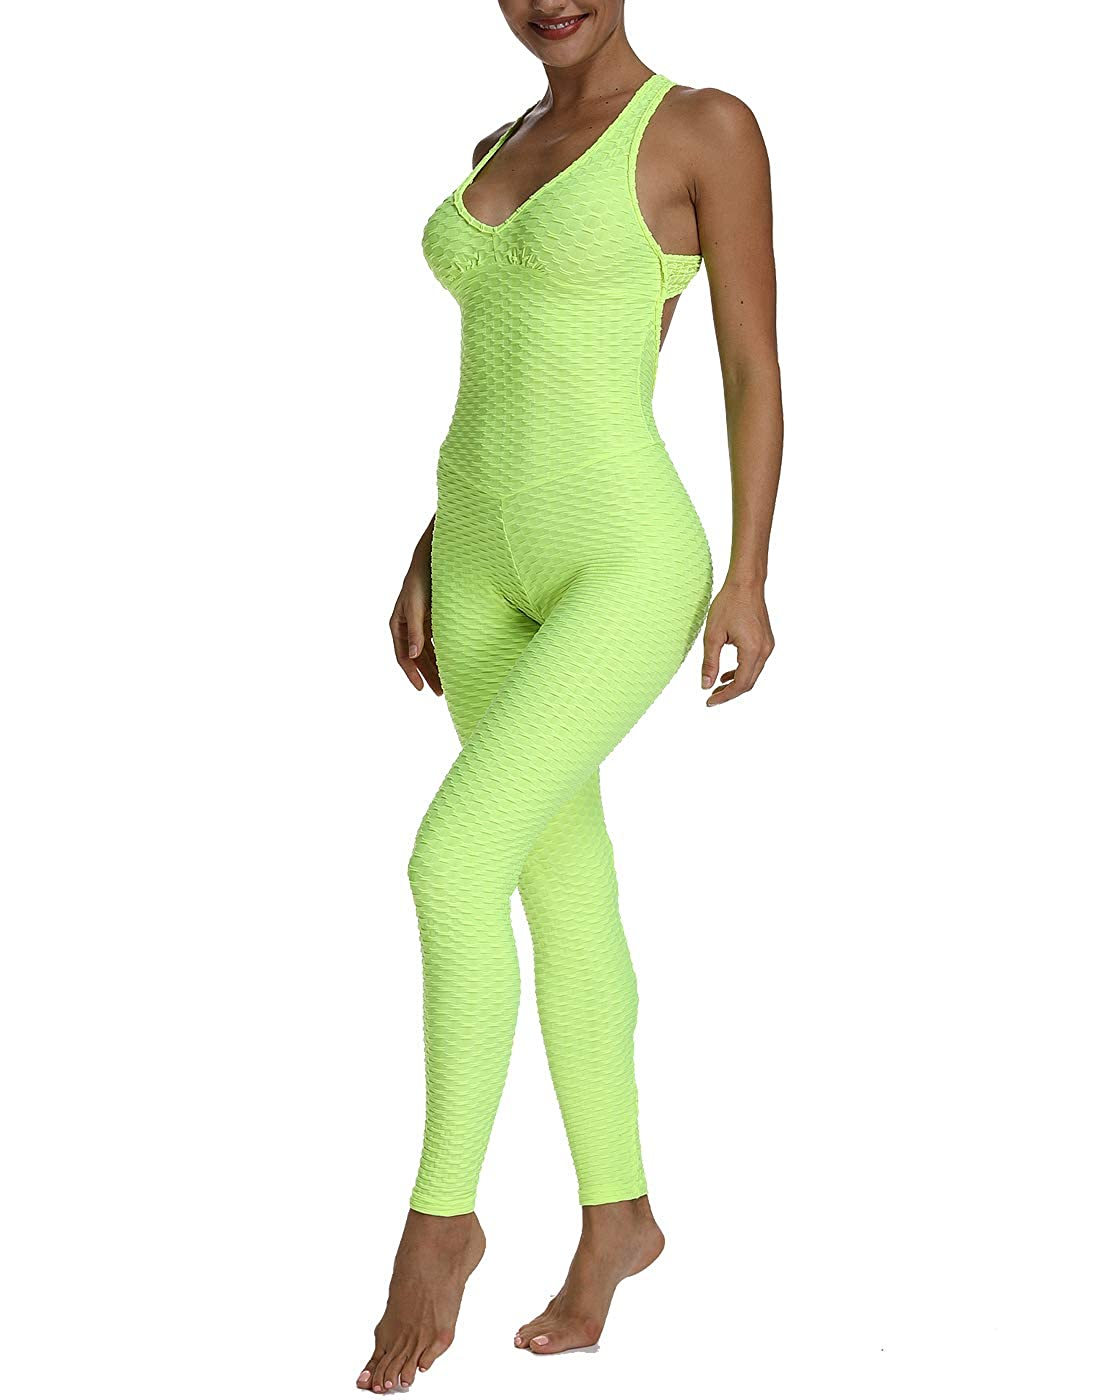 TRESXS Womens One Piece Texture Yoga Sport Gym Fitness Butt Lift Yoga Jumpsuit Sleeveless Backless Bandage Romper Playsuit